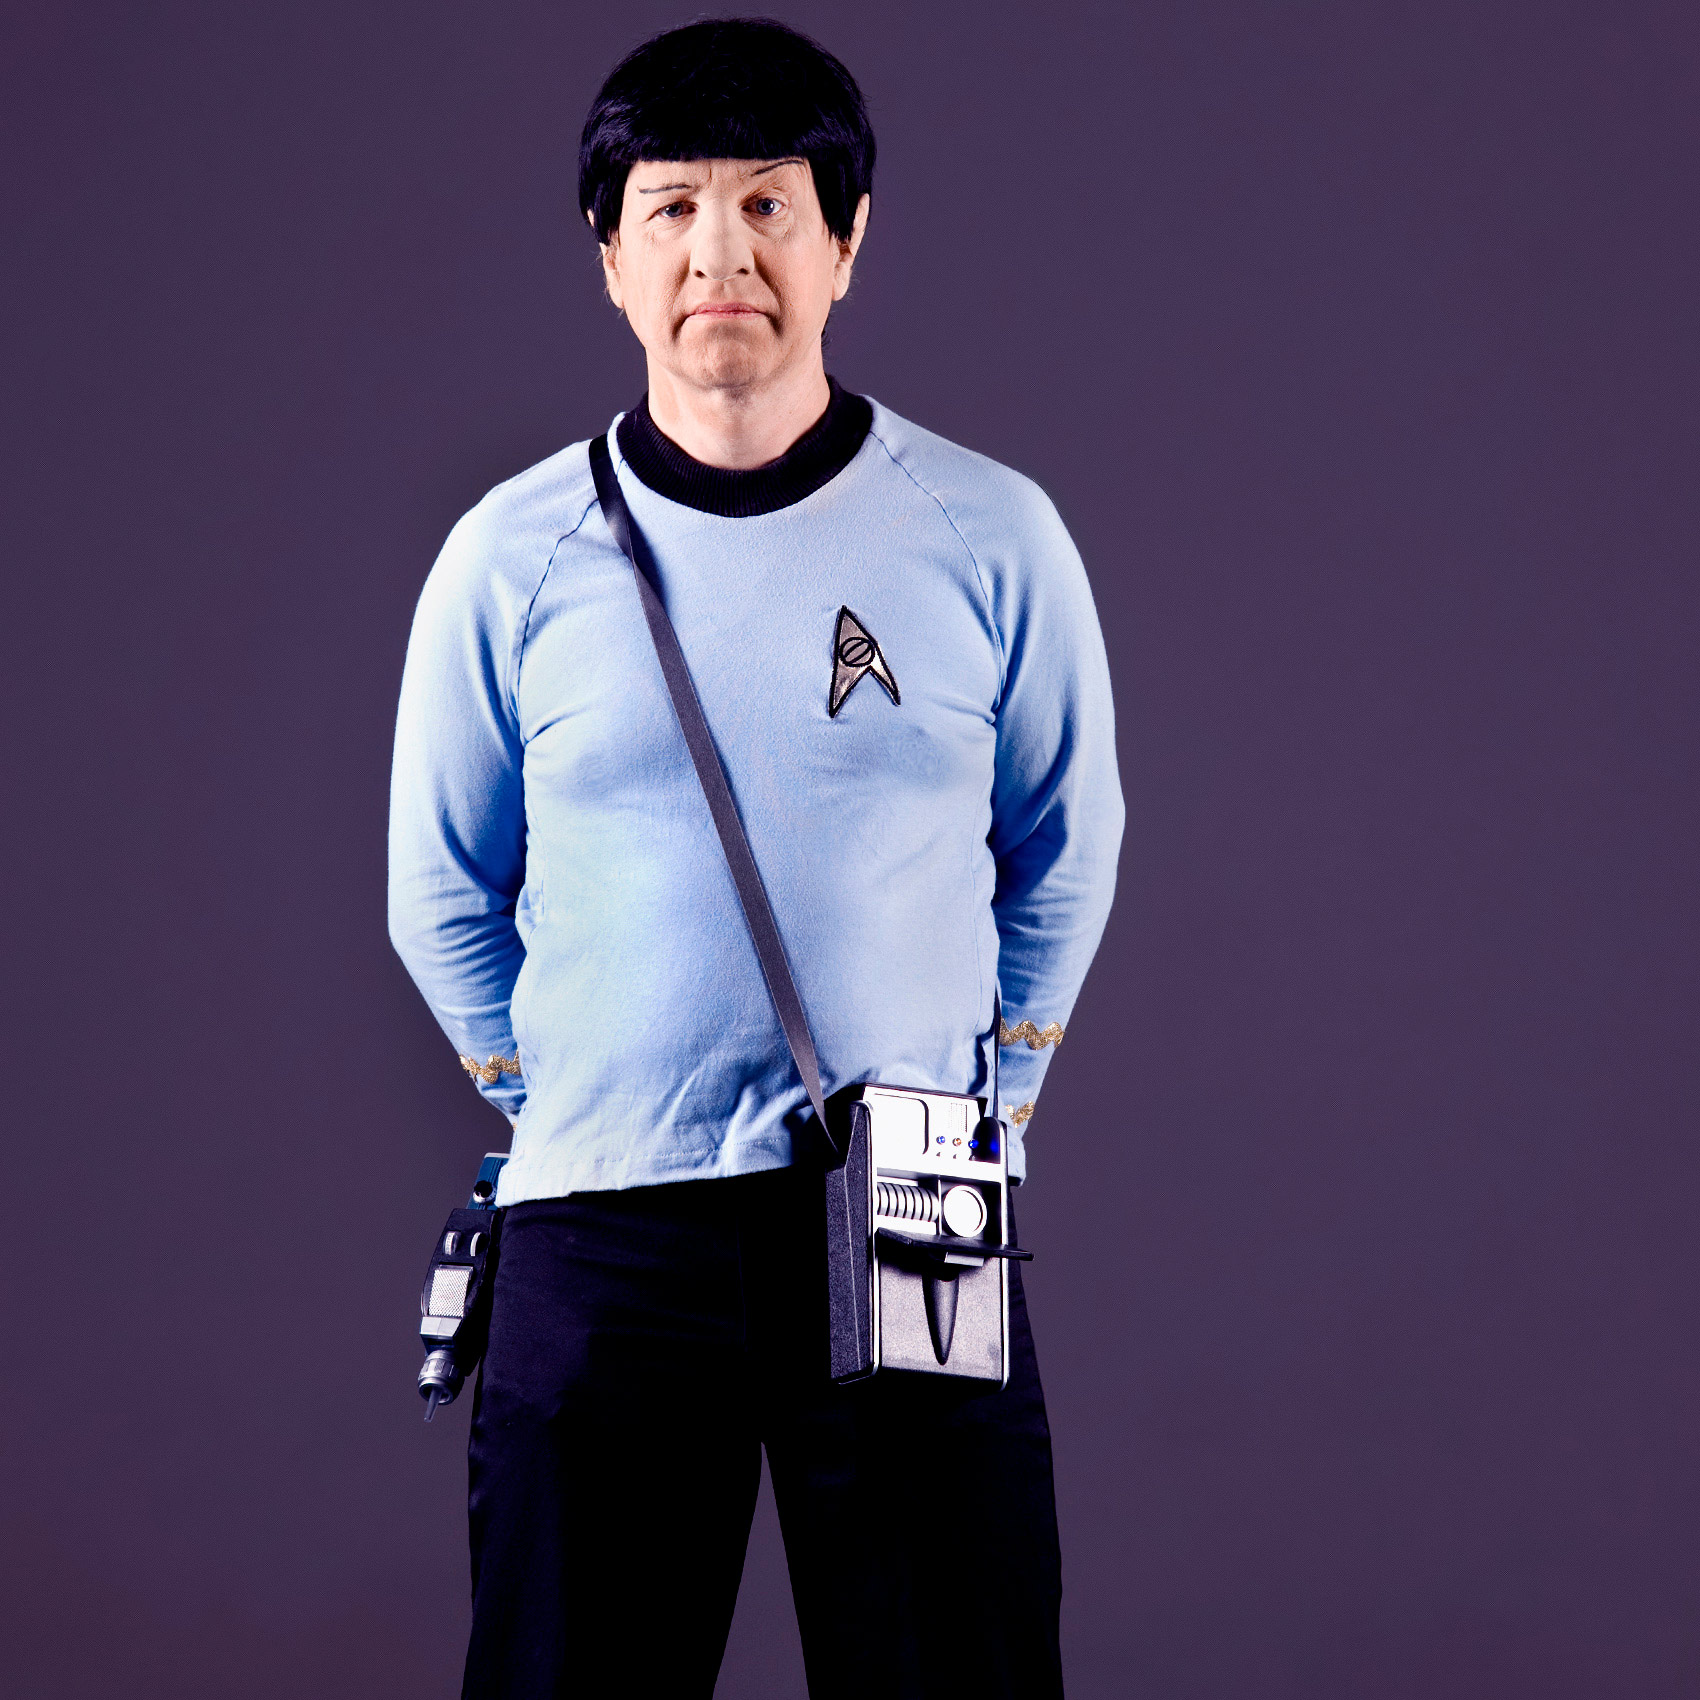 a funny portrait of a man dressed as spock from star trek at toronto comicon